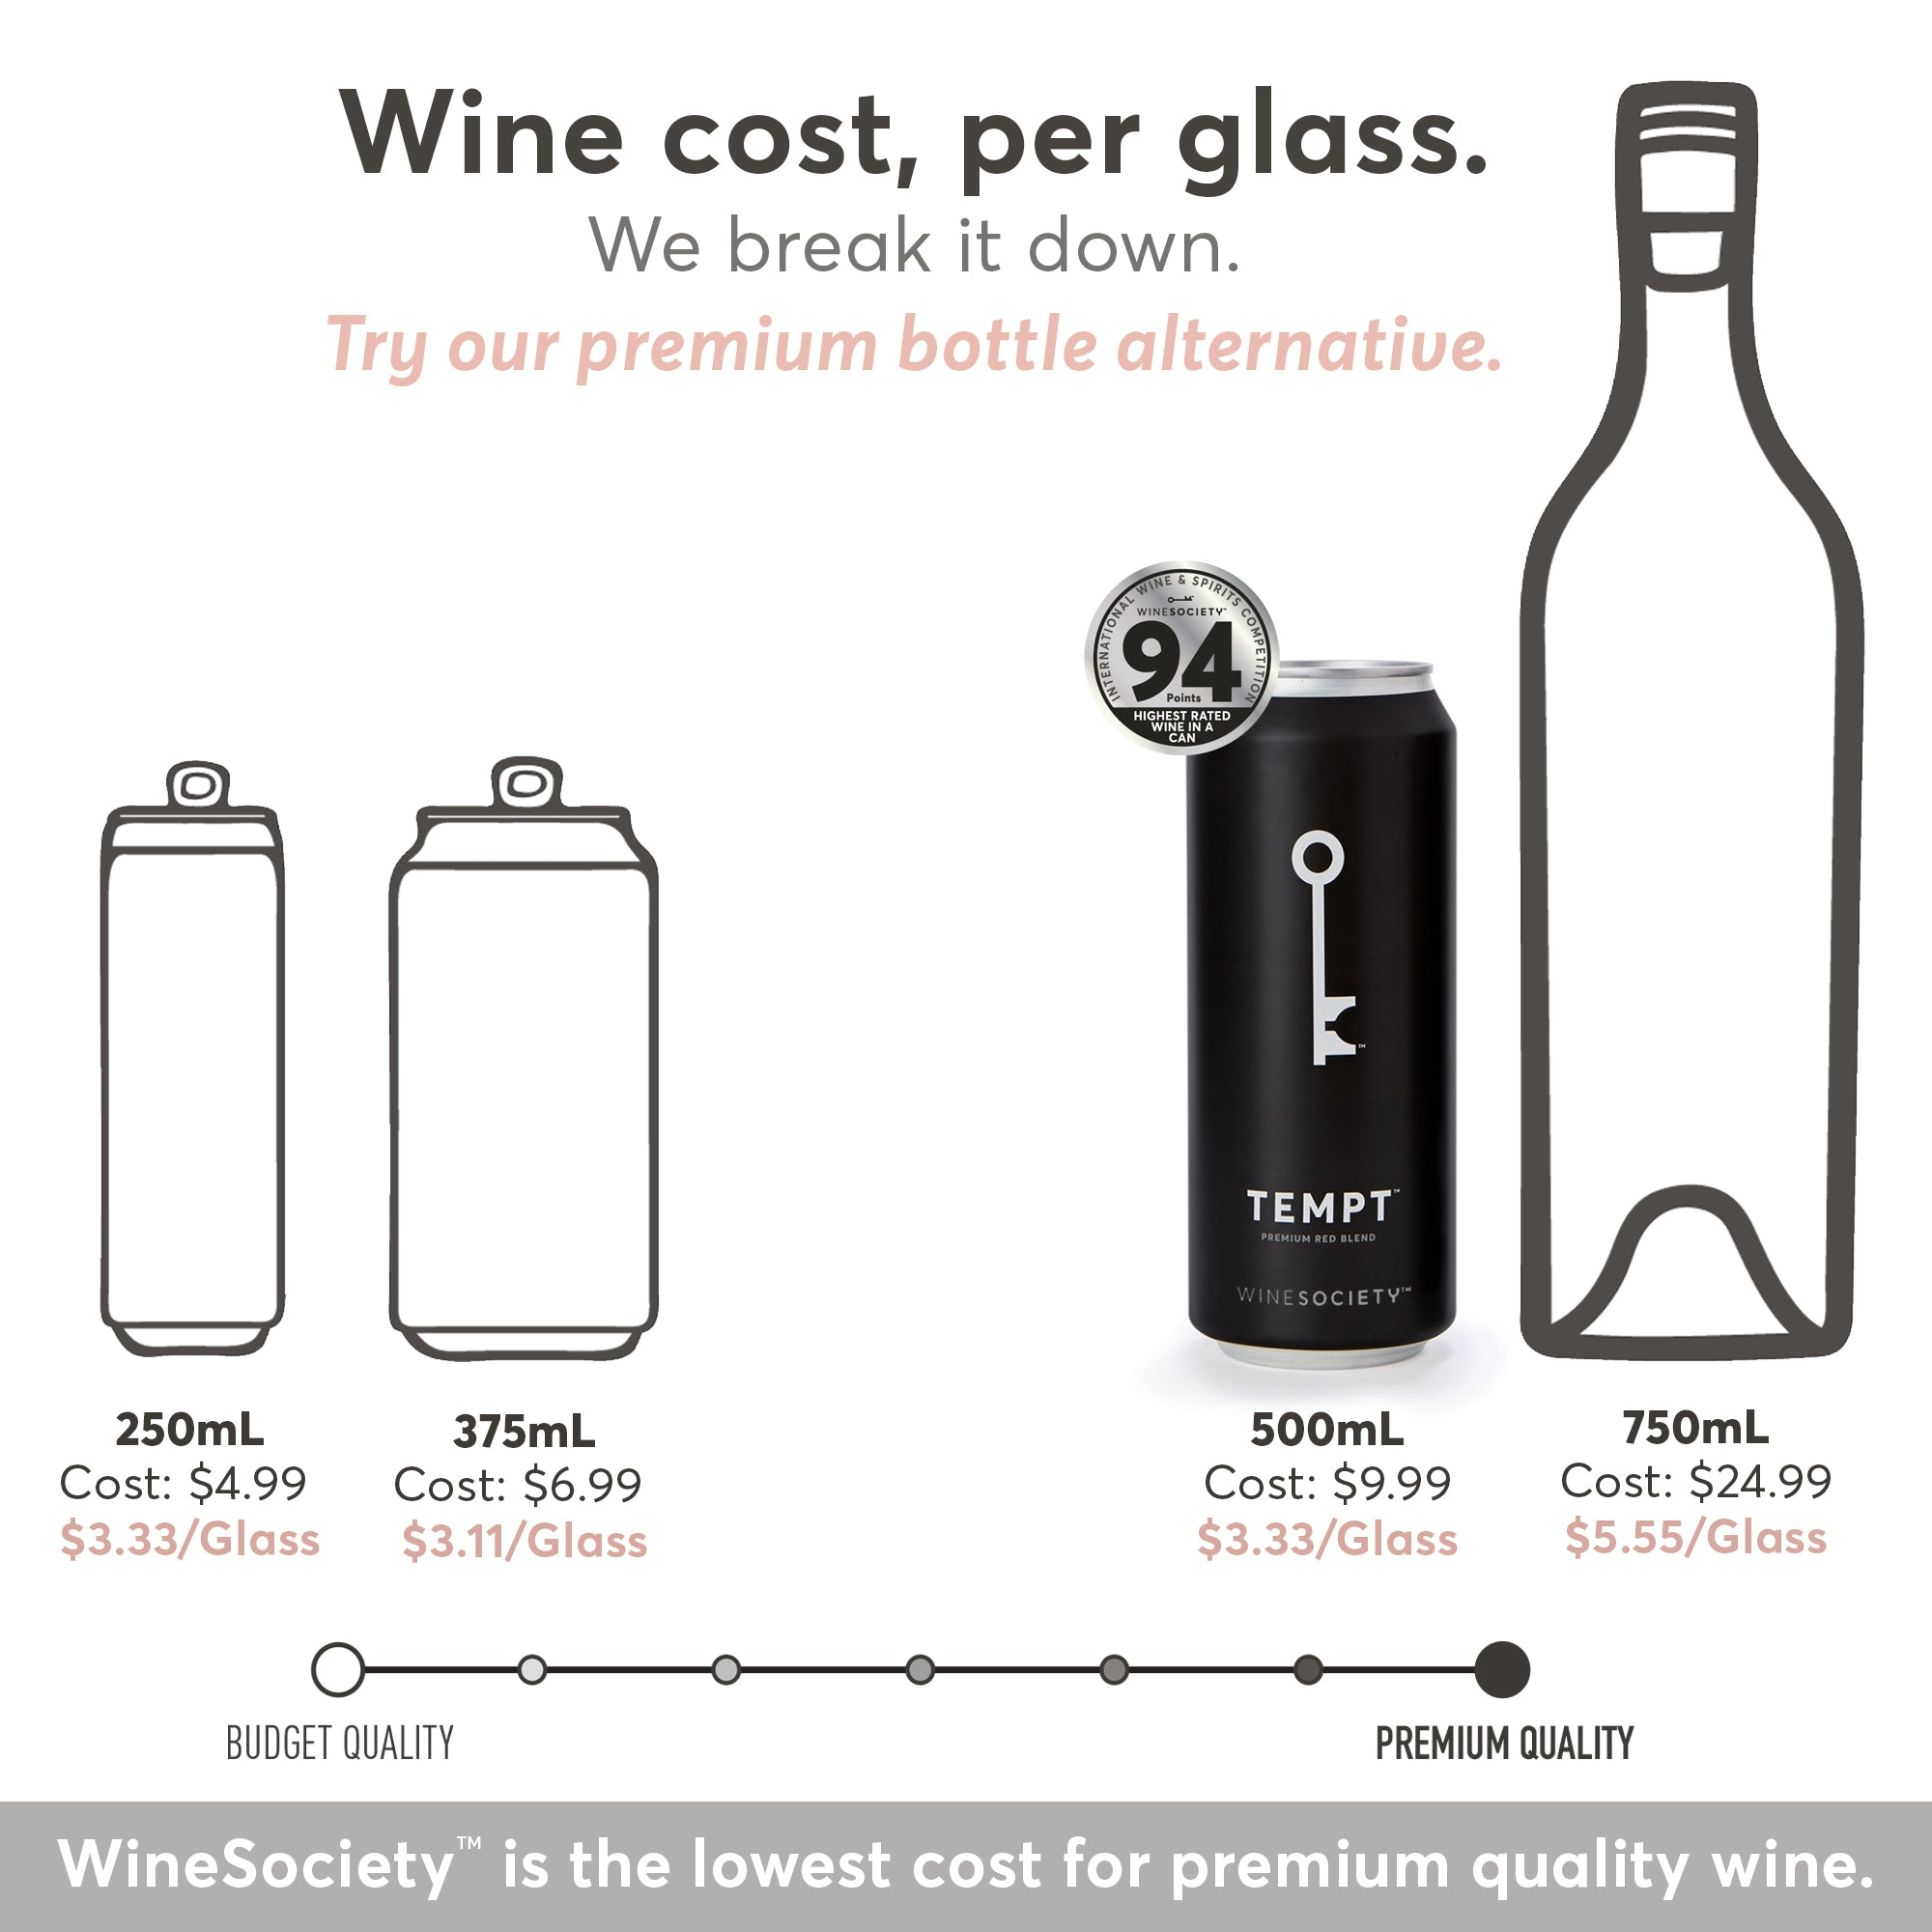 WineSociety Price Per Glass Infographic